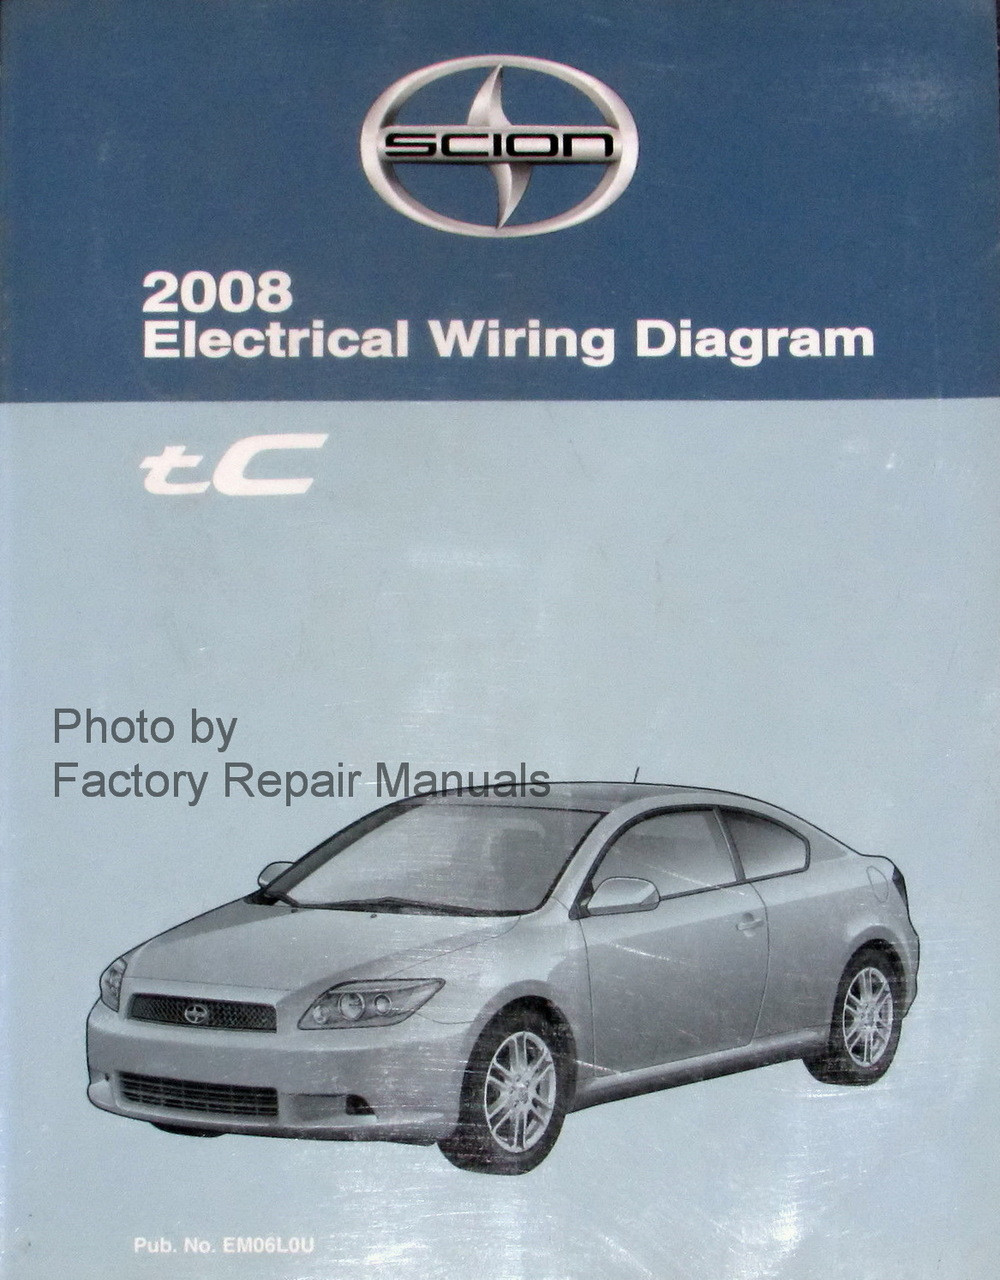 2008 Scion tC Electrical Wiring Diagrams Original Toyota Manual - Factory  Repair ManualsFactory Repair Manuals